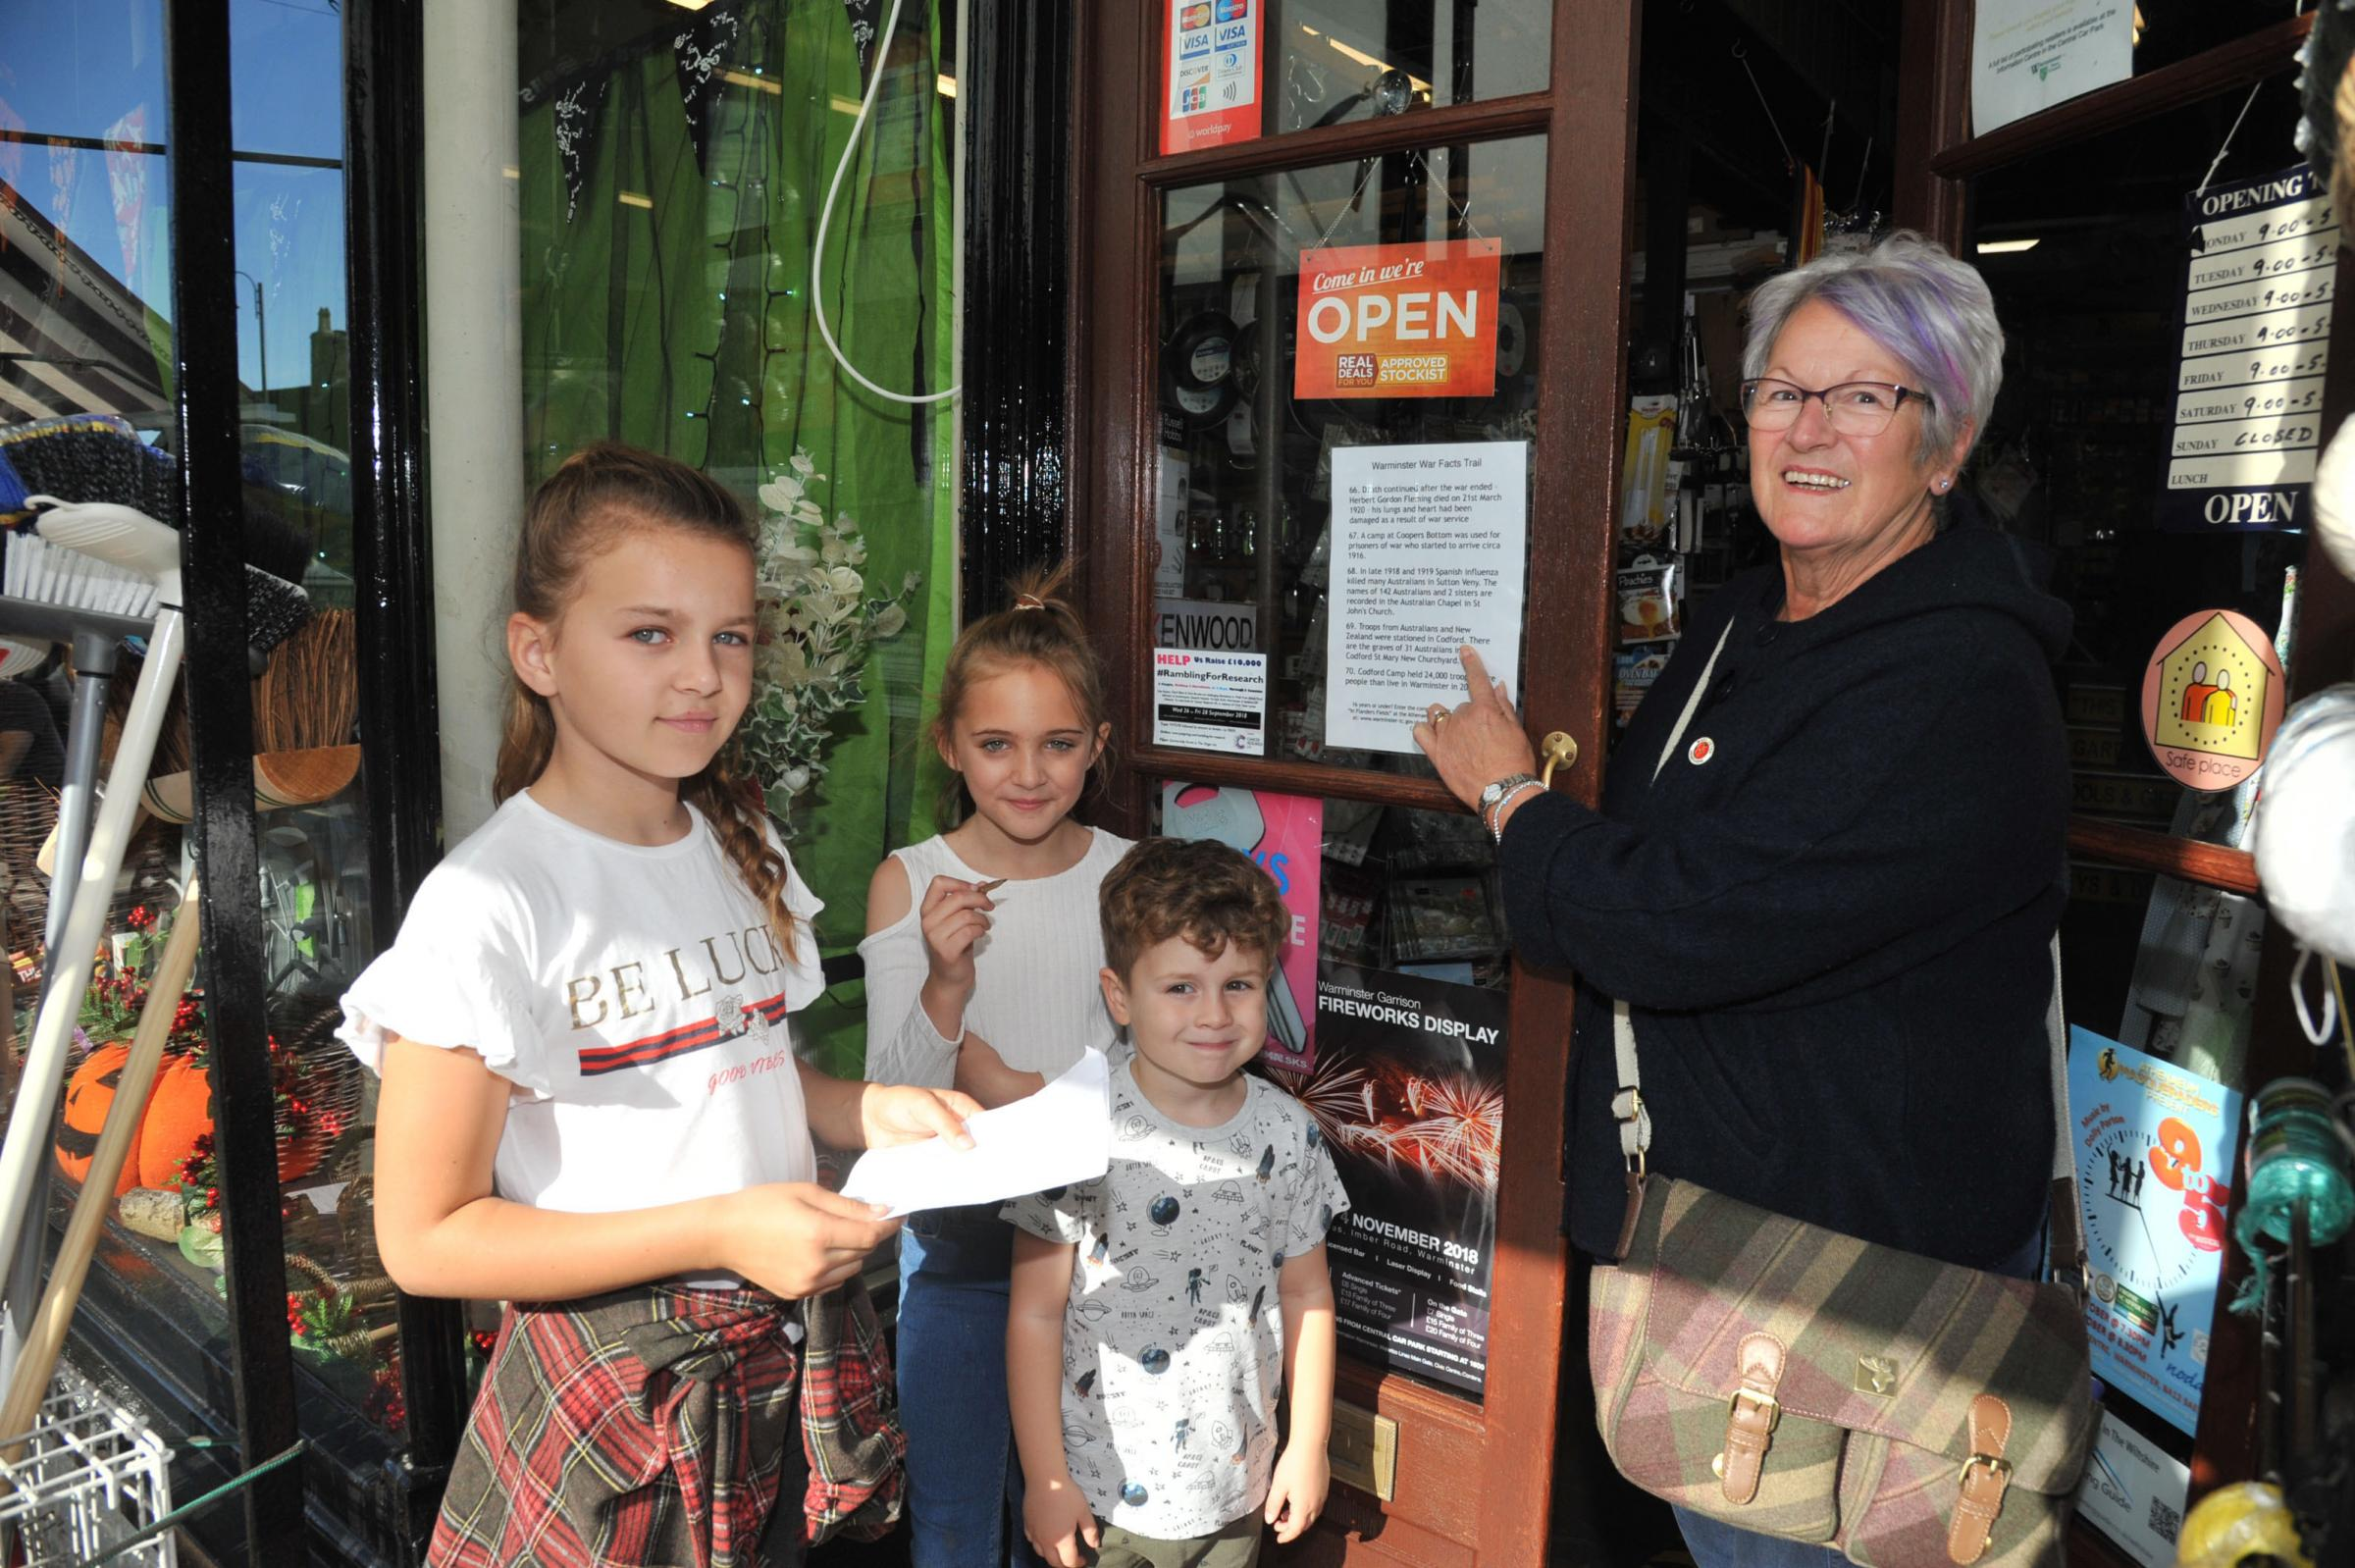 Lesley Fudge, a Warminster Poppy Appeal fundraiser, promotes her WWI fact-finder trail with youngsters Maddy, Grace and Archie              Photo: Trevor Porter 59970-1